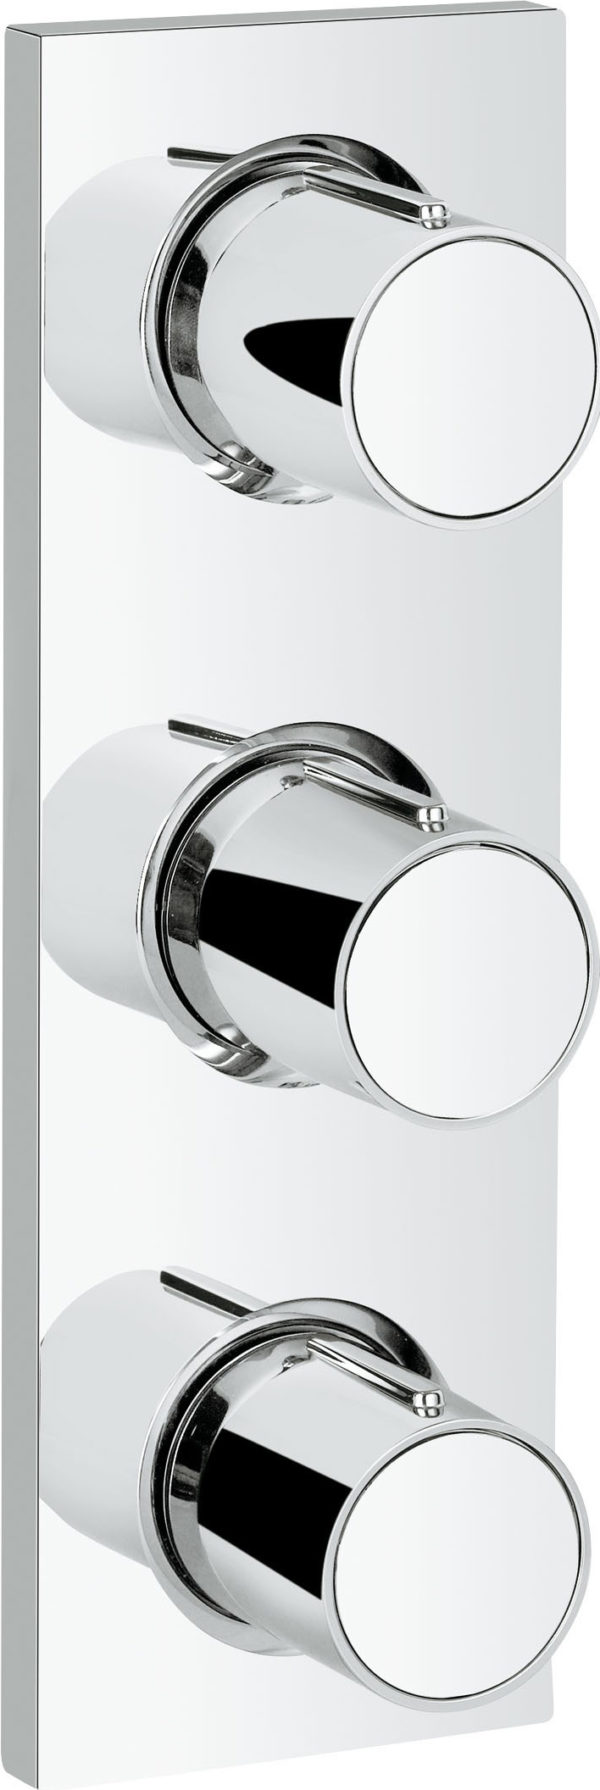 Вентиль Grohe Grohtherm F 27625000